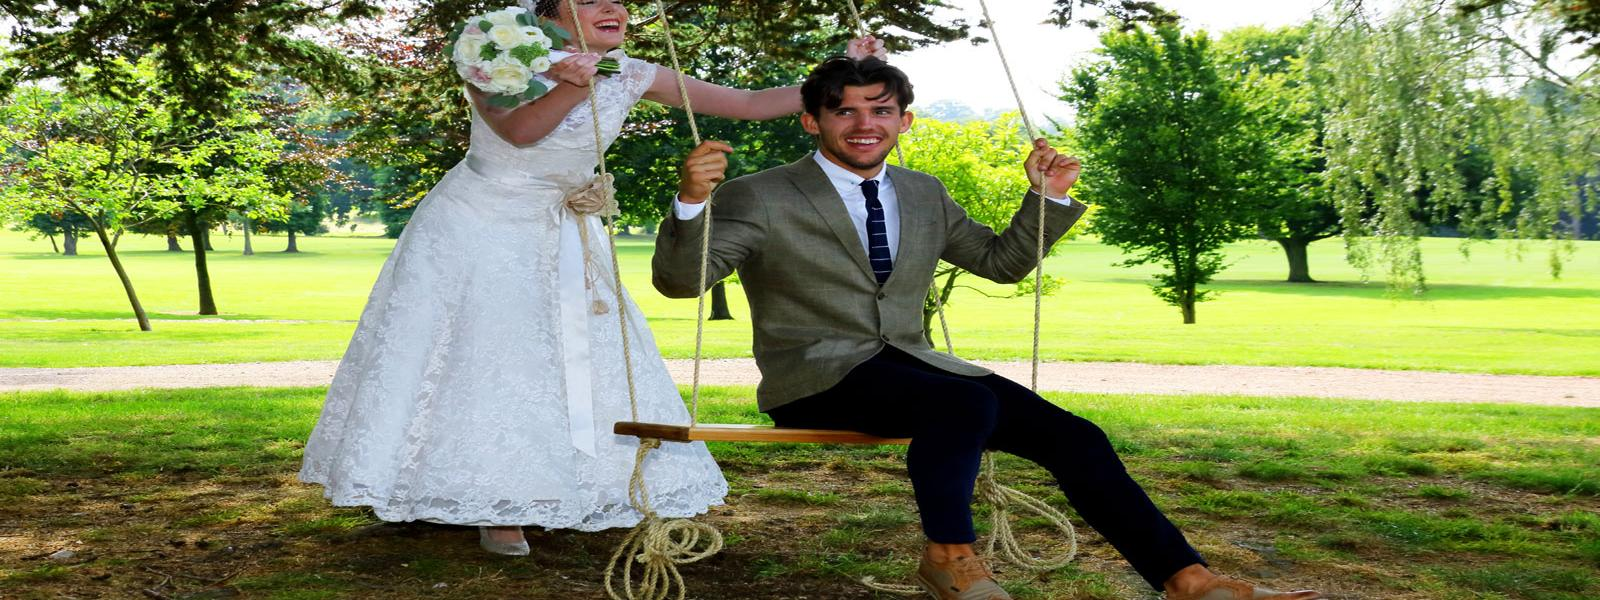 bride pushes groom on swing